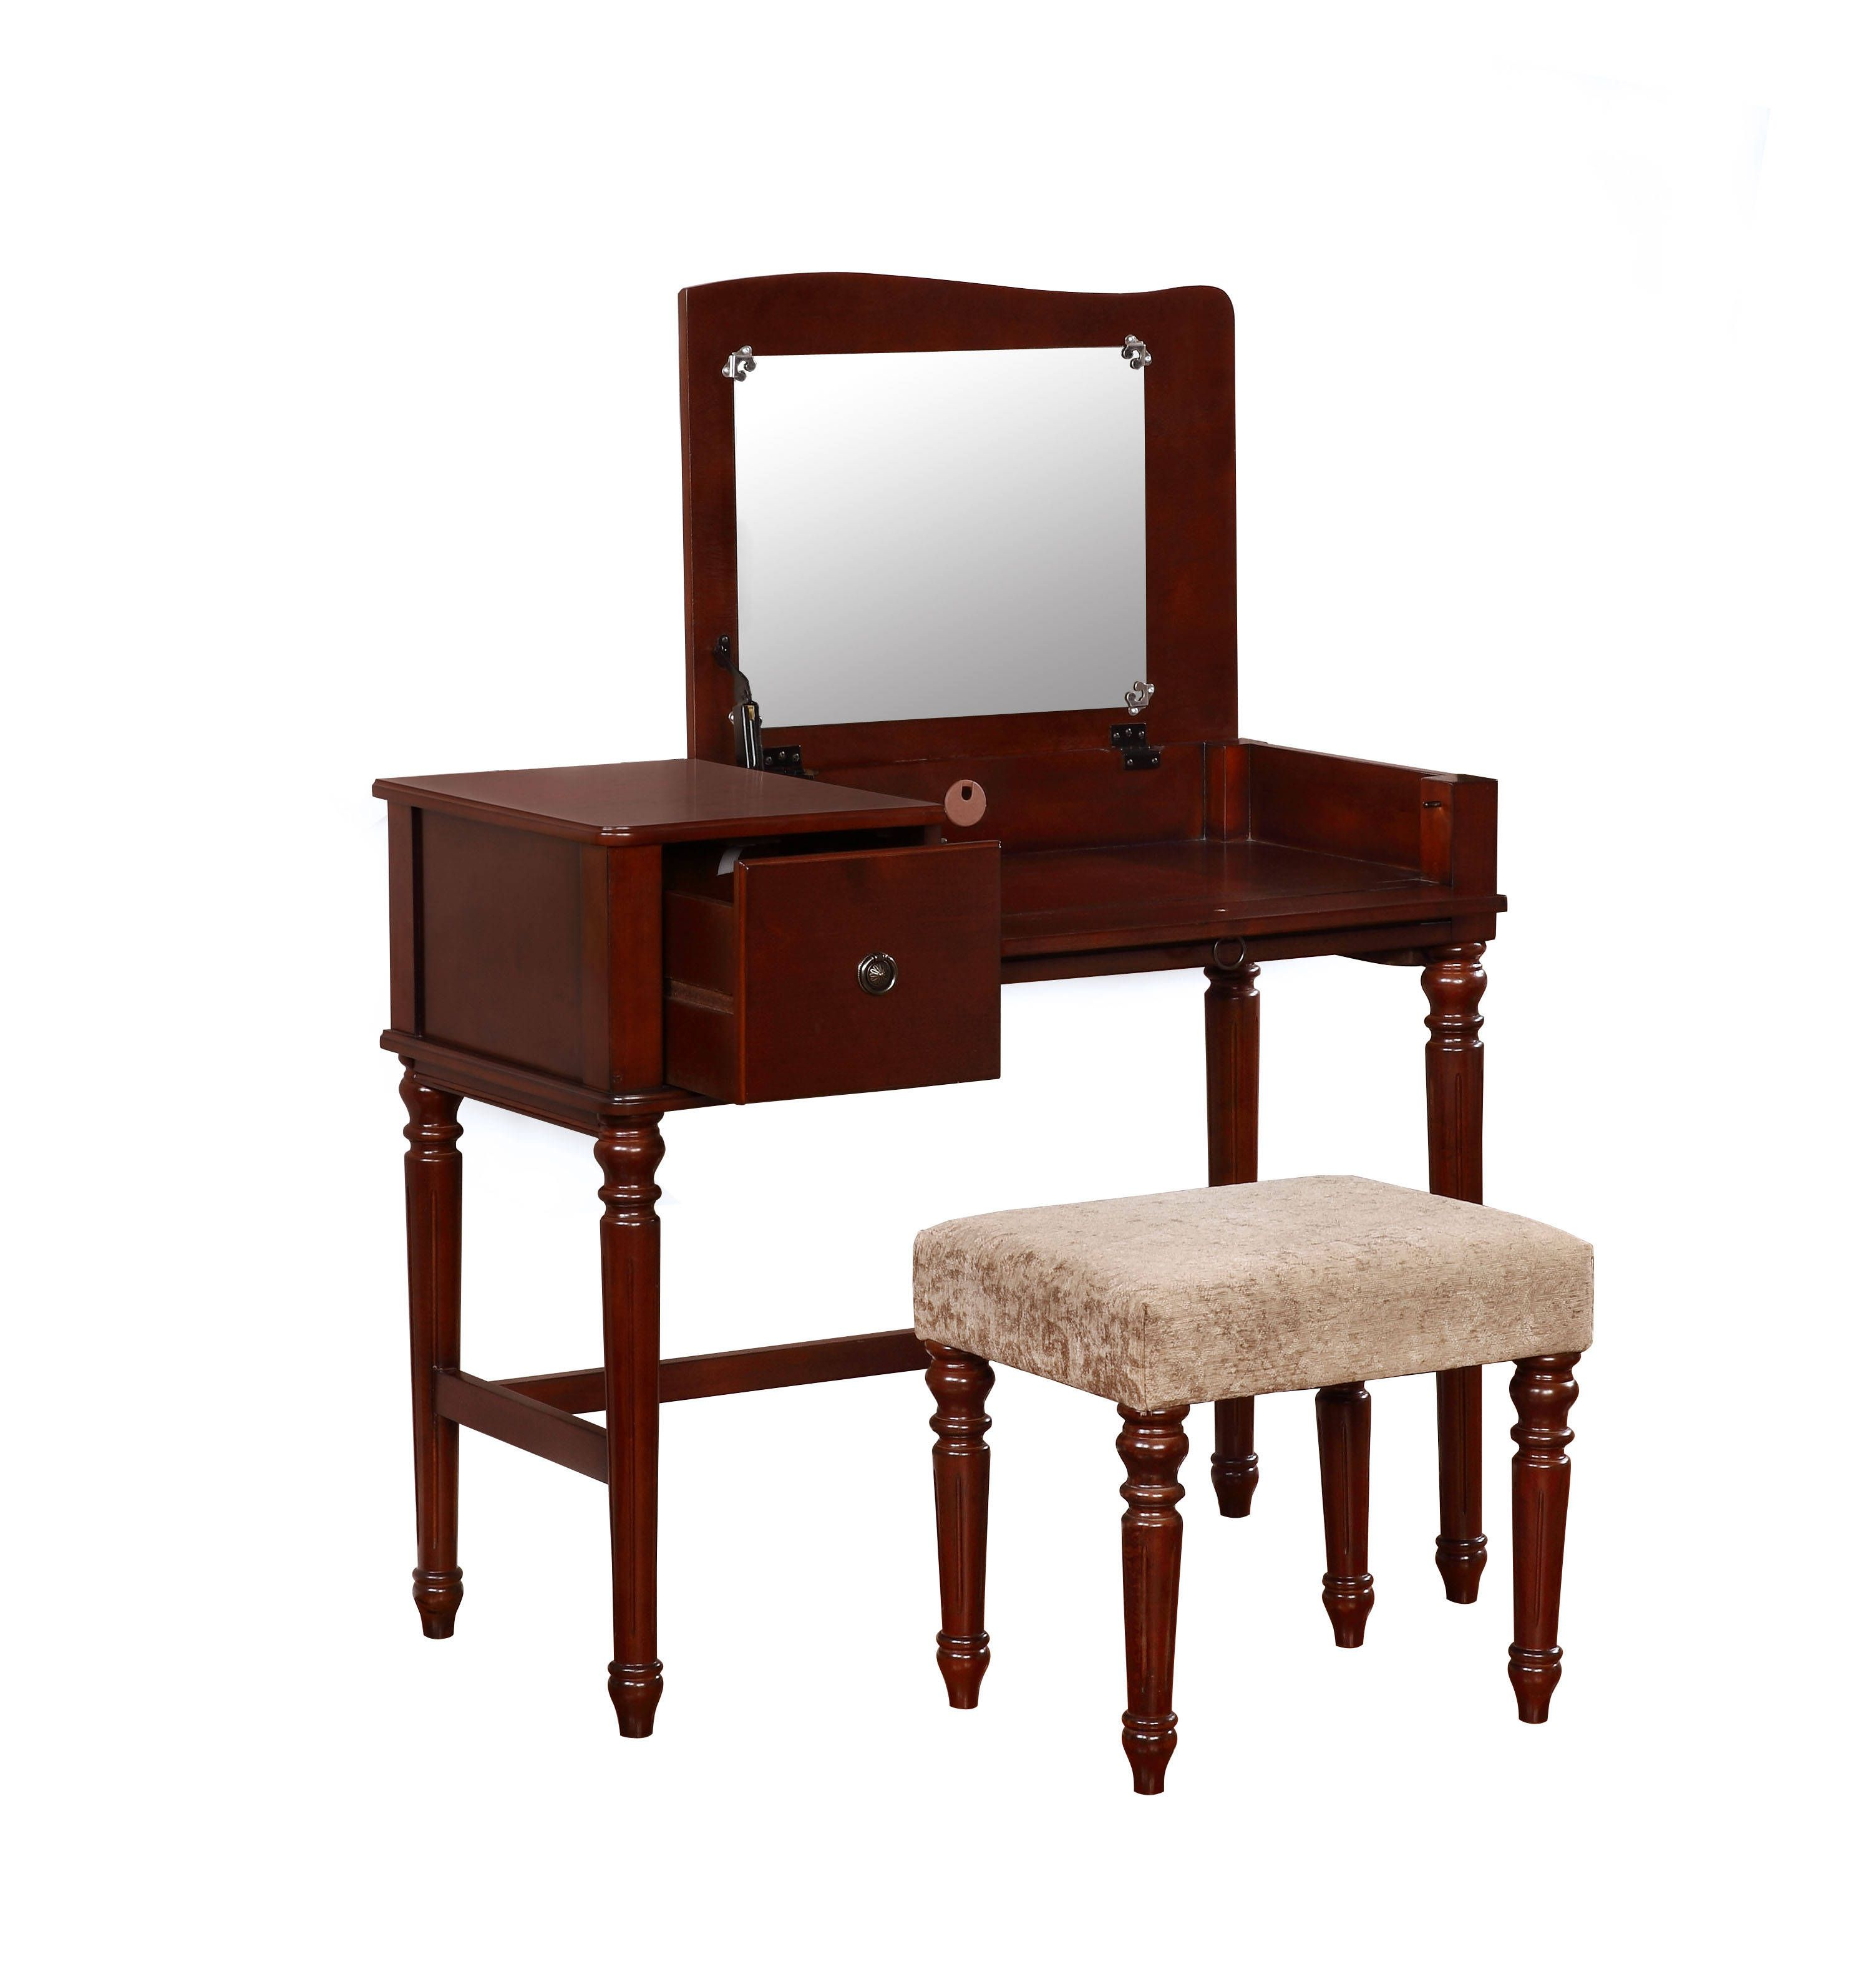 Wyndham beige fabric walnut mdf solid wood mirror vanity set